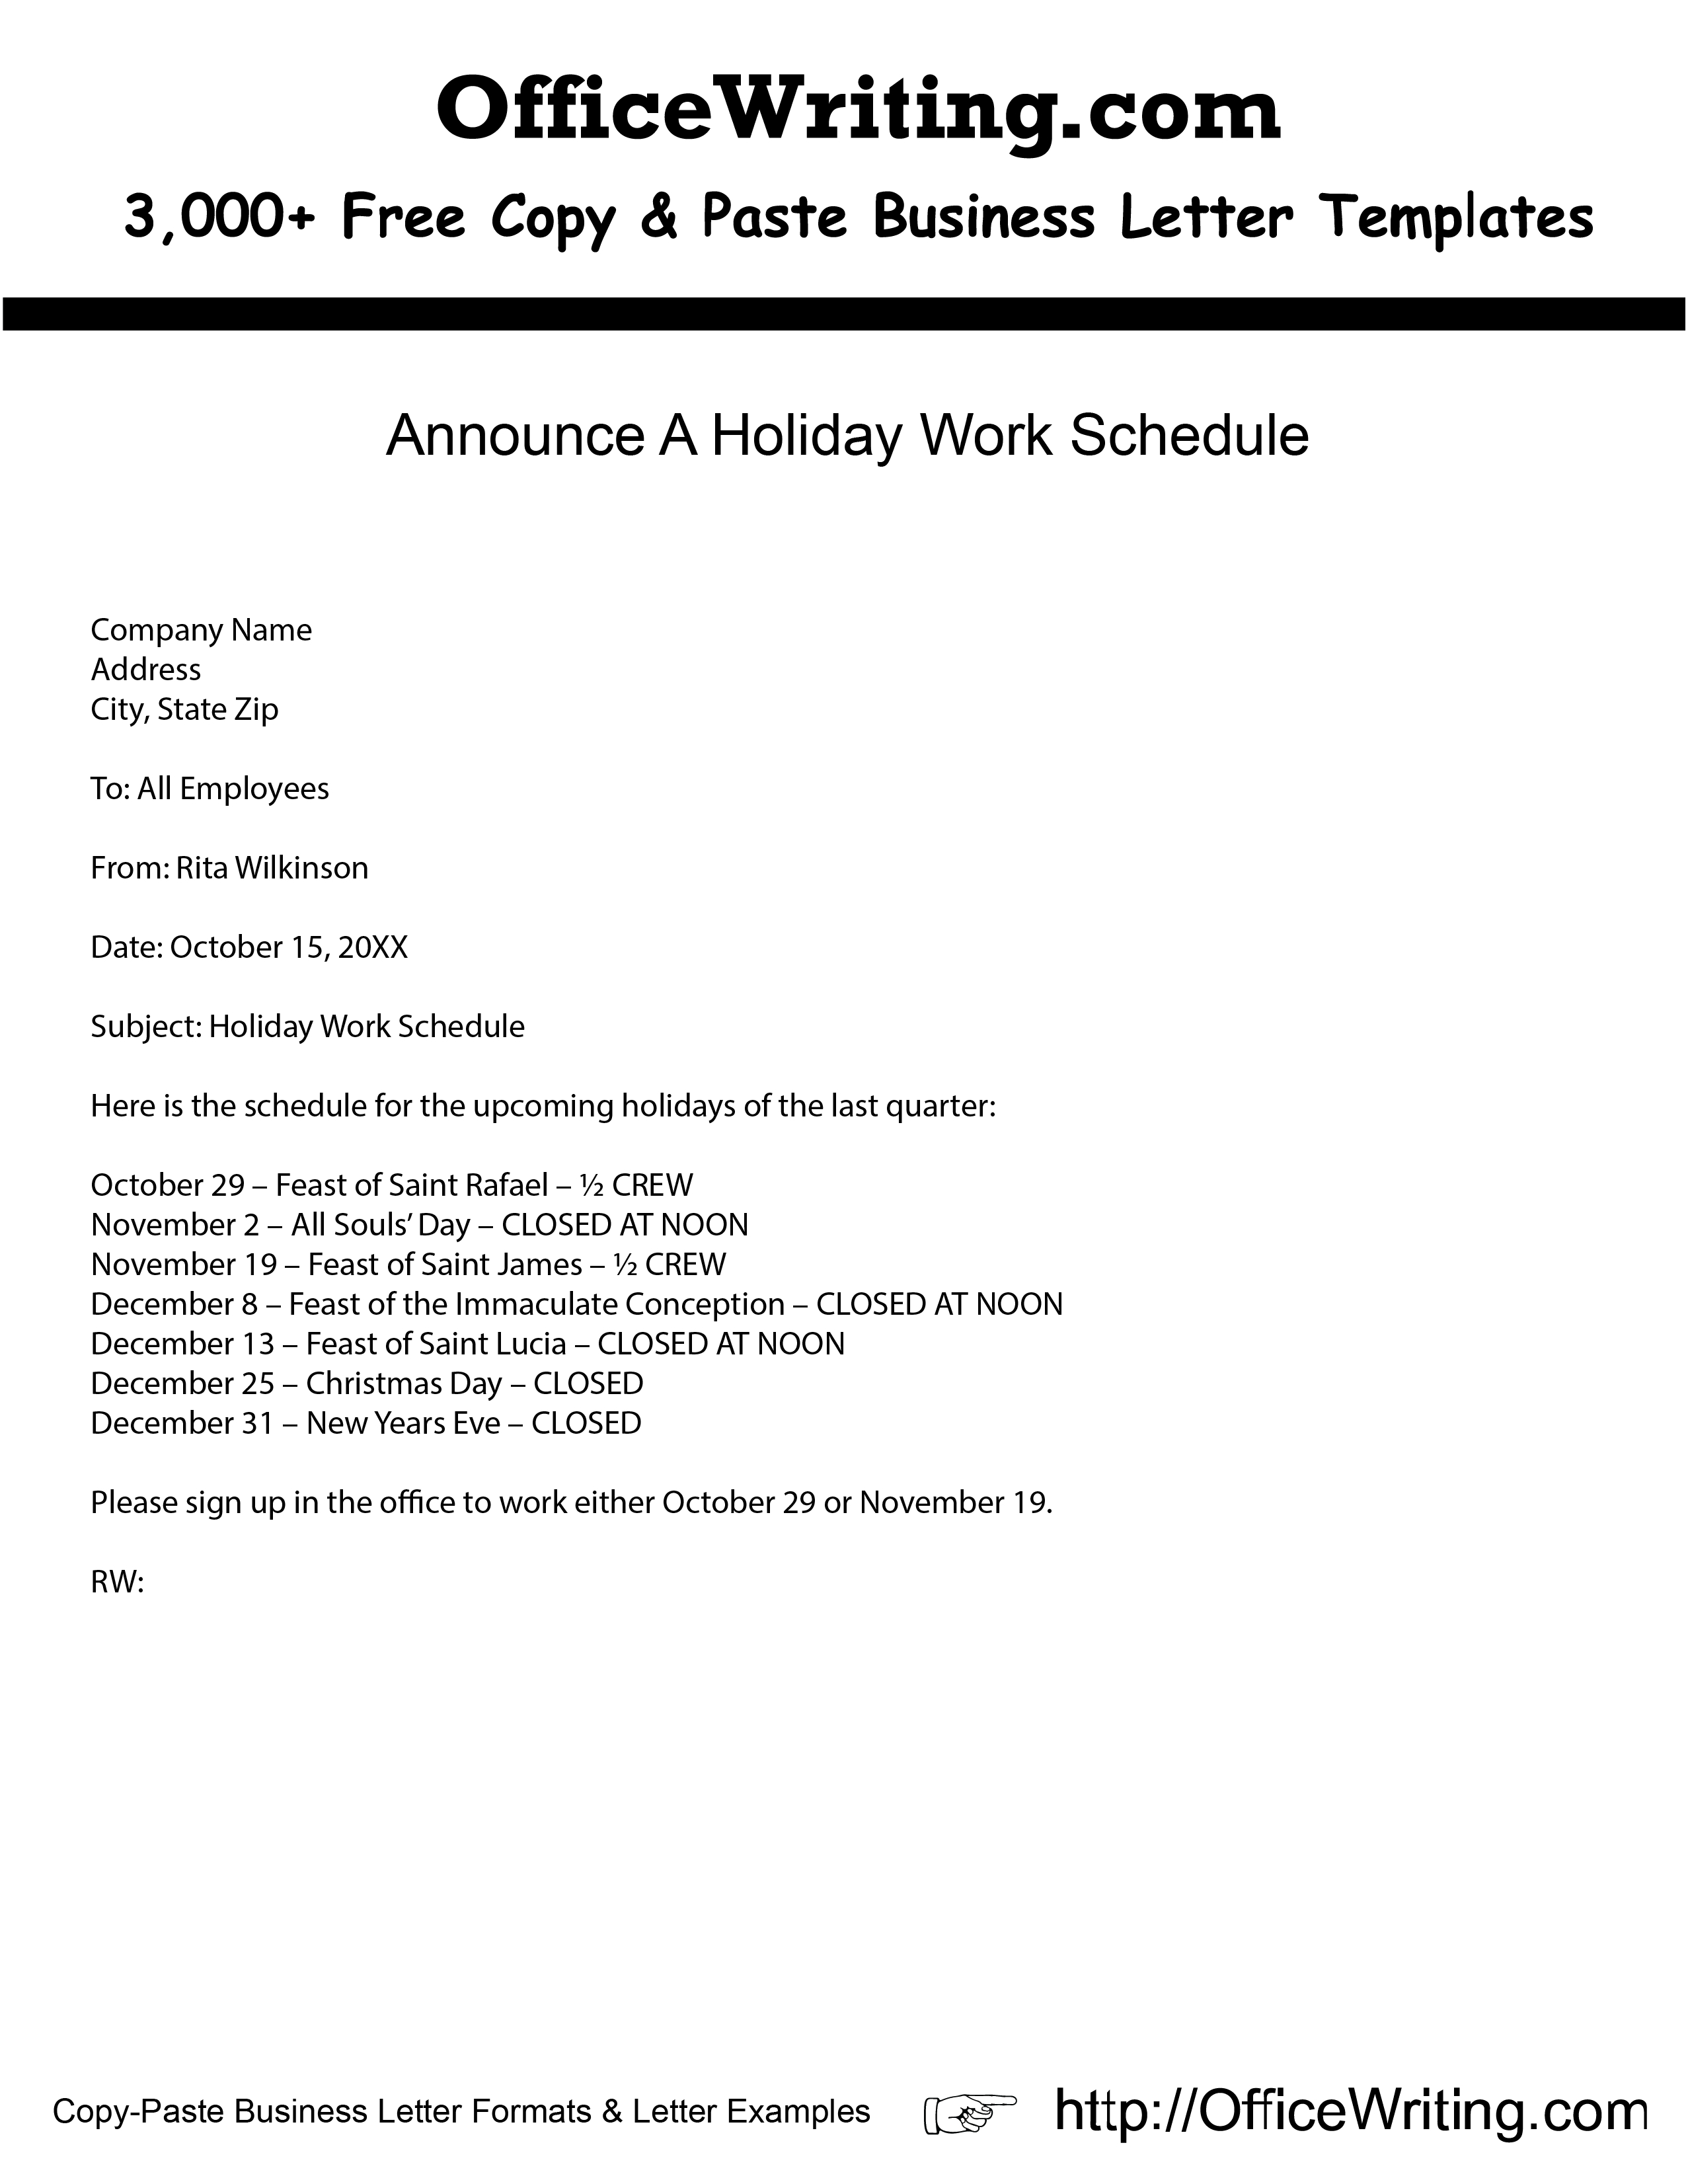 Holiday Letter Template - Announce A Holiday Work Schedule We Have Over 3 000 Free Sample